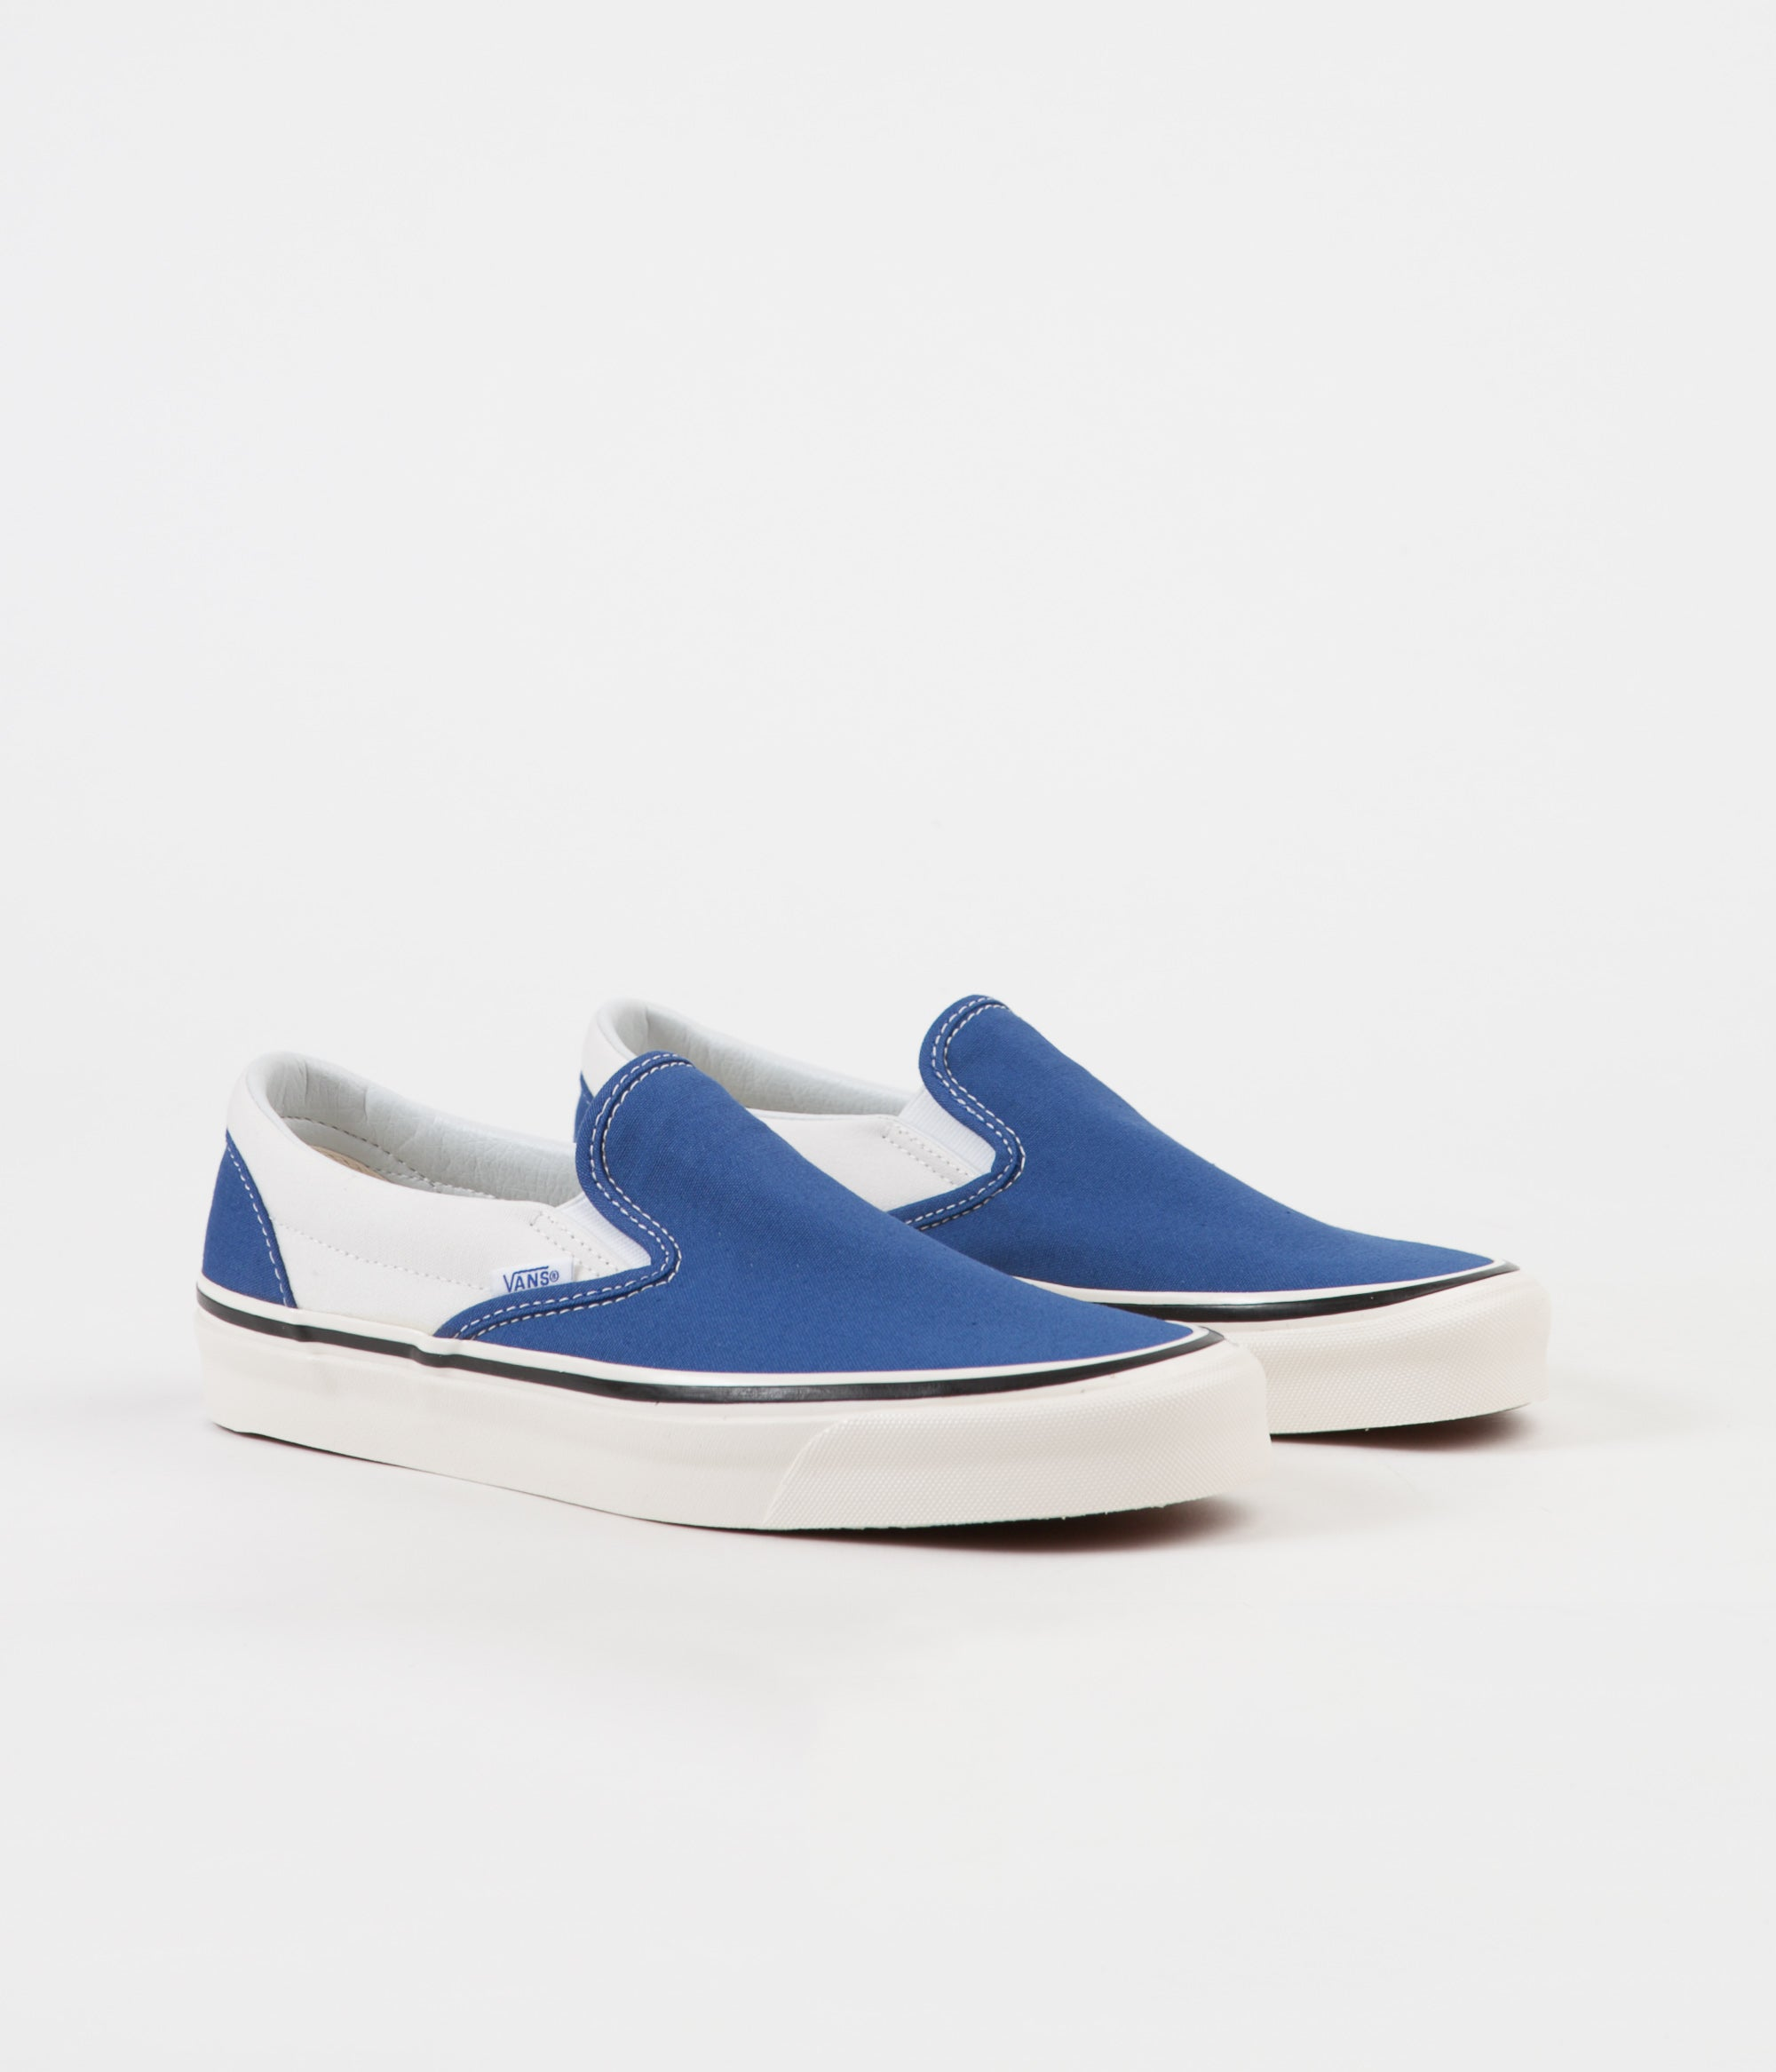 ... Vans Classic Slip-On 98 DX Anaheim Factory Shoes - OG Blue   White ... 3cd678a5de69